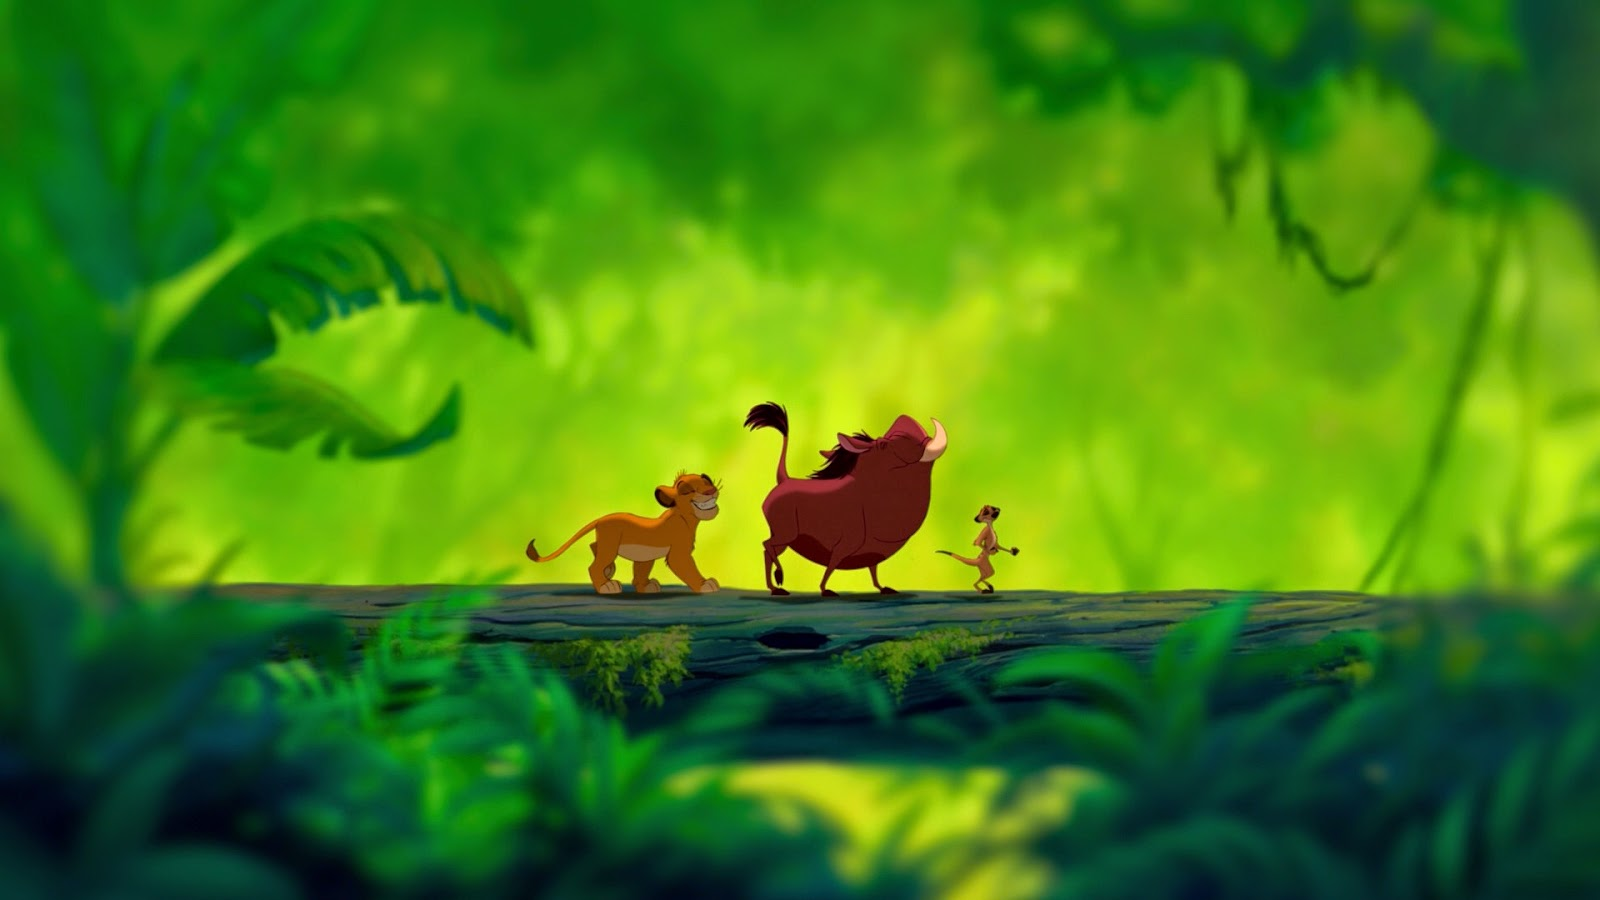 Lion King Wallpapers Hd Beautiful Wallpapers Collection 2018